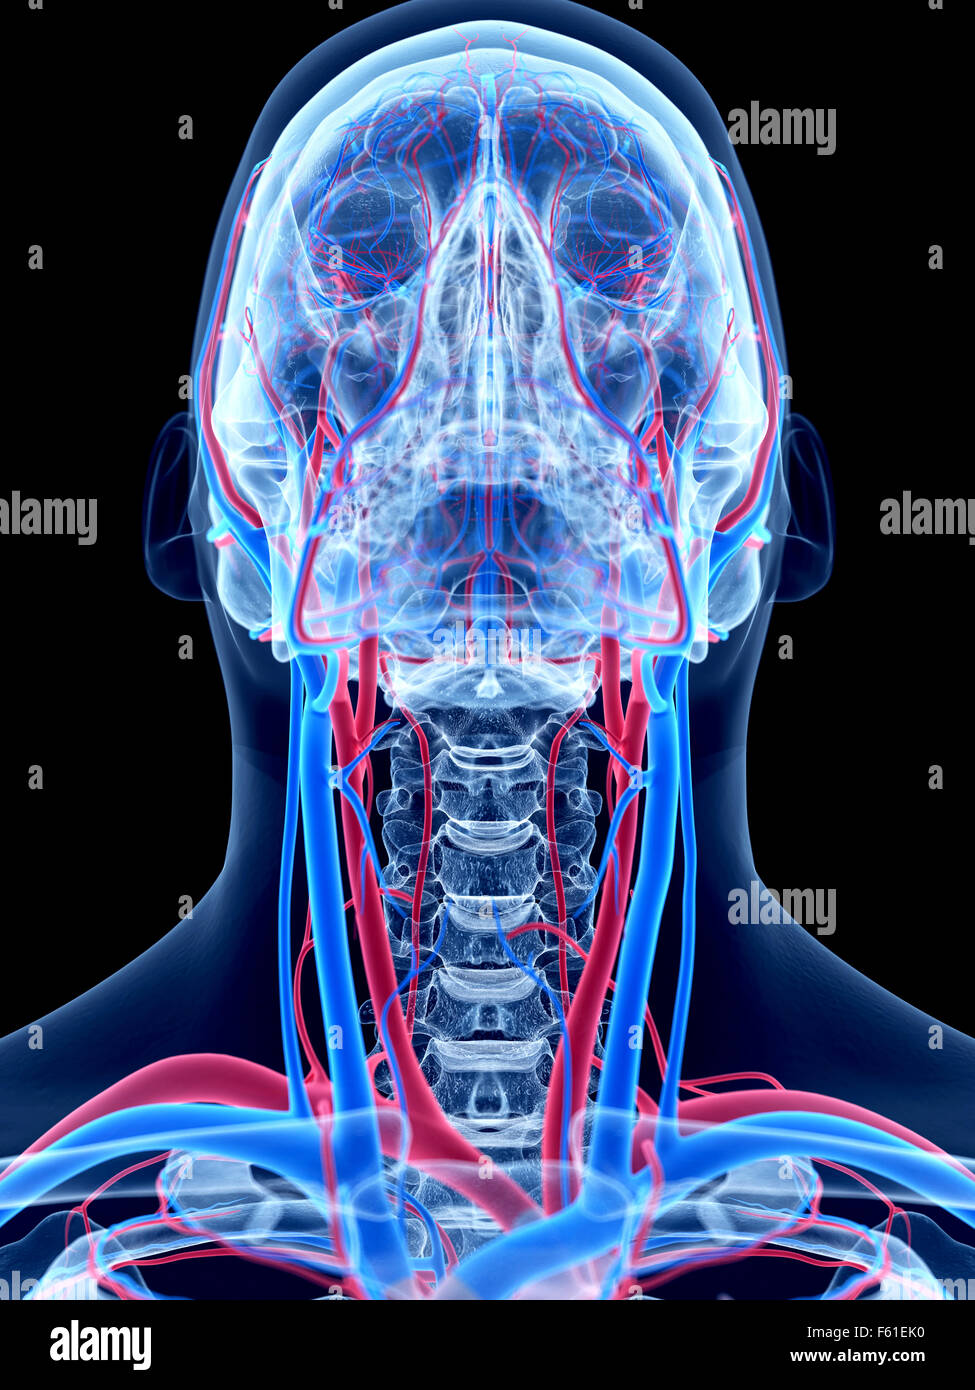 The Human Vascular System The Neck Stock Photo 89773236 Alamy